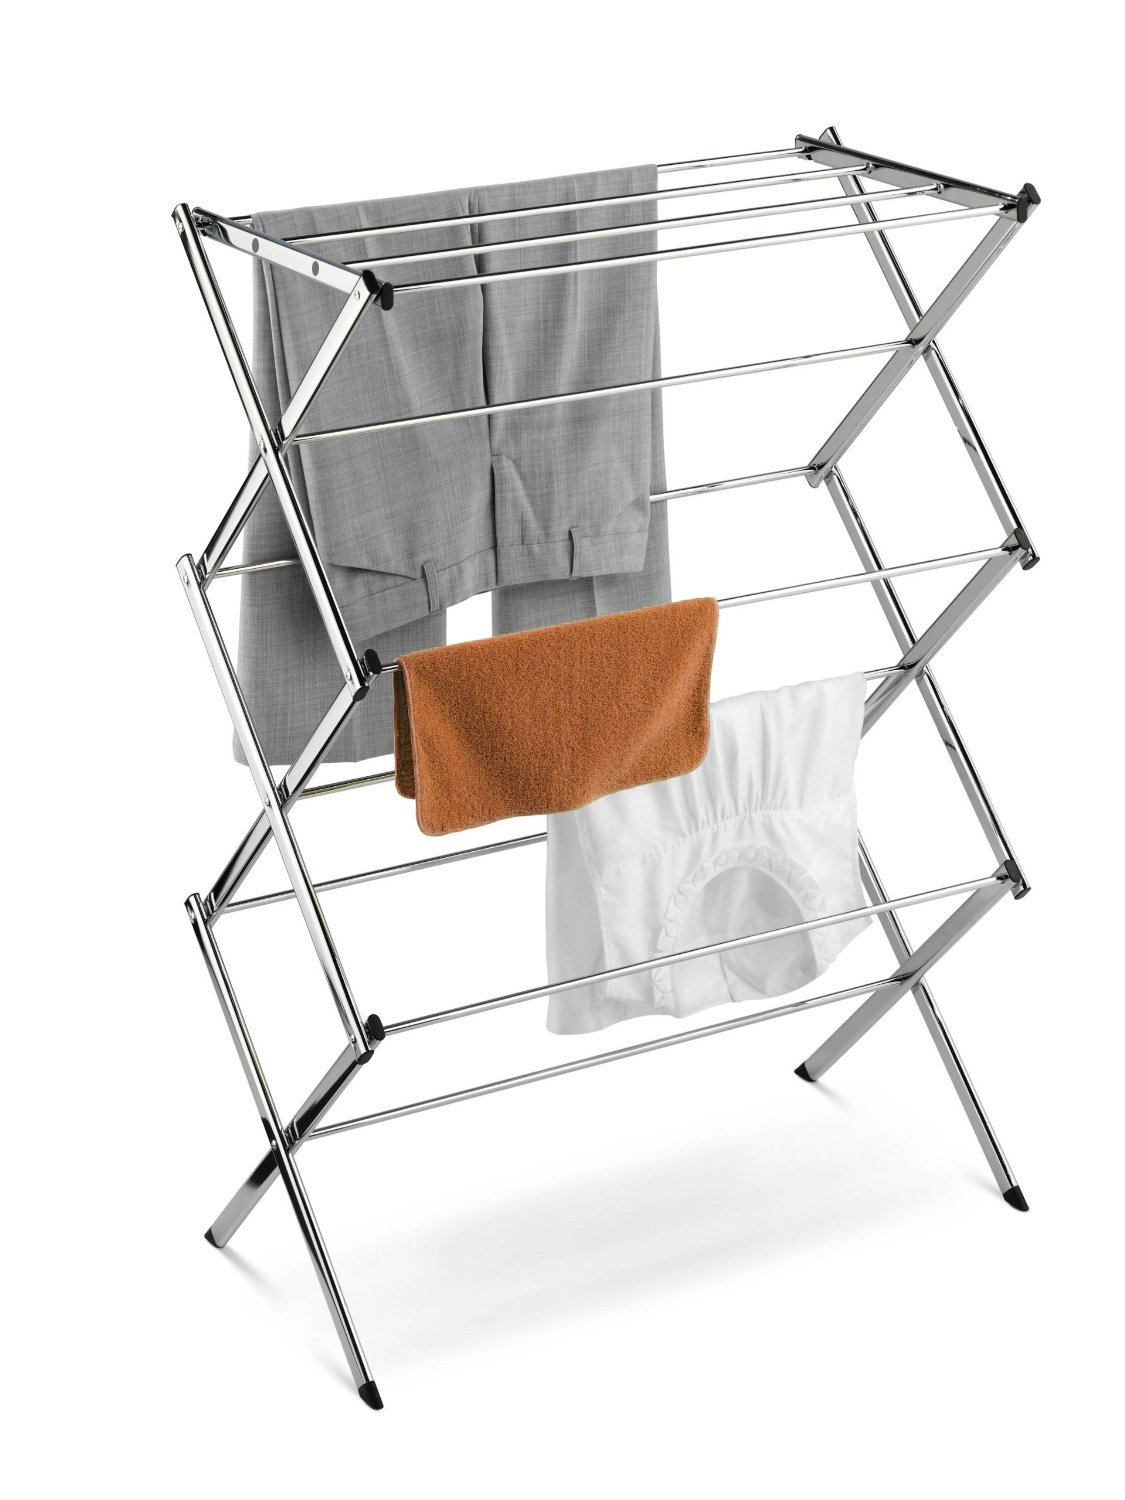 clothes drying rack for small spaces. Black Bedroom Furniture Sets. Home Design Ideas